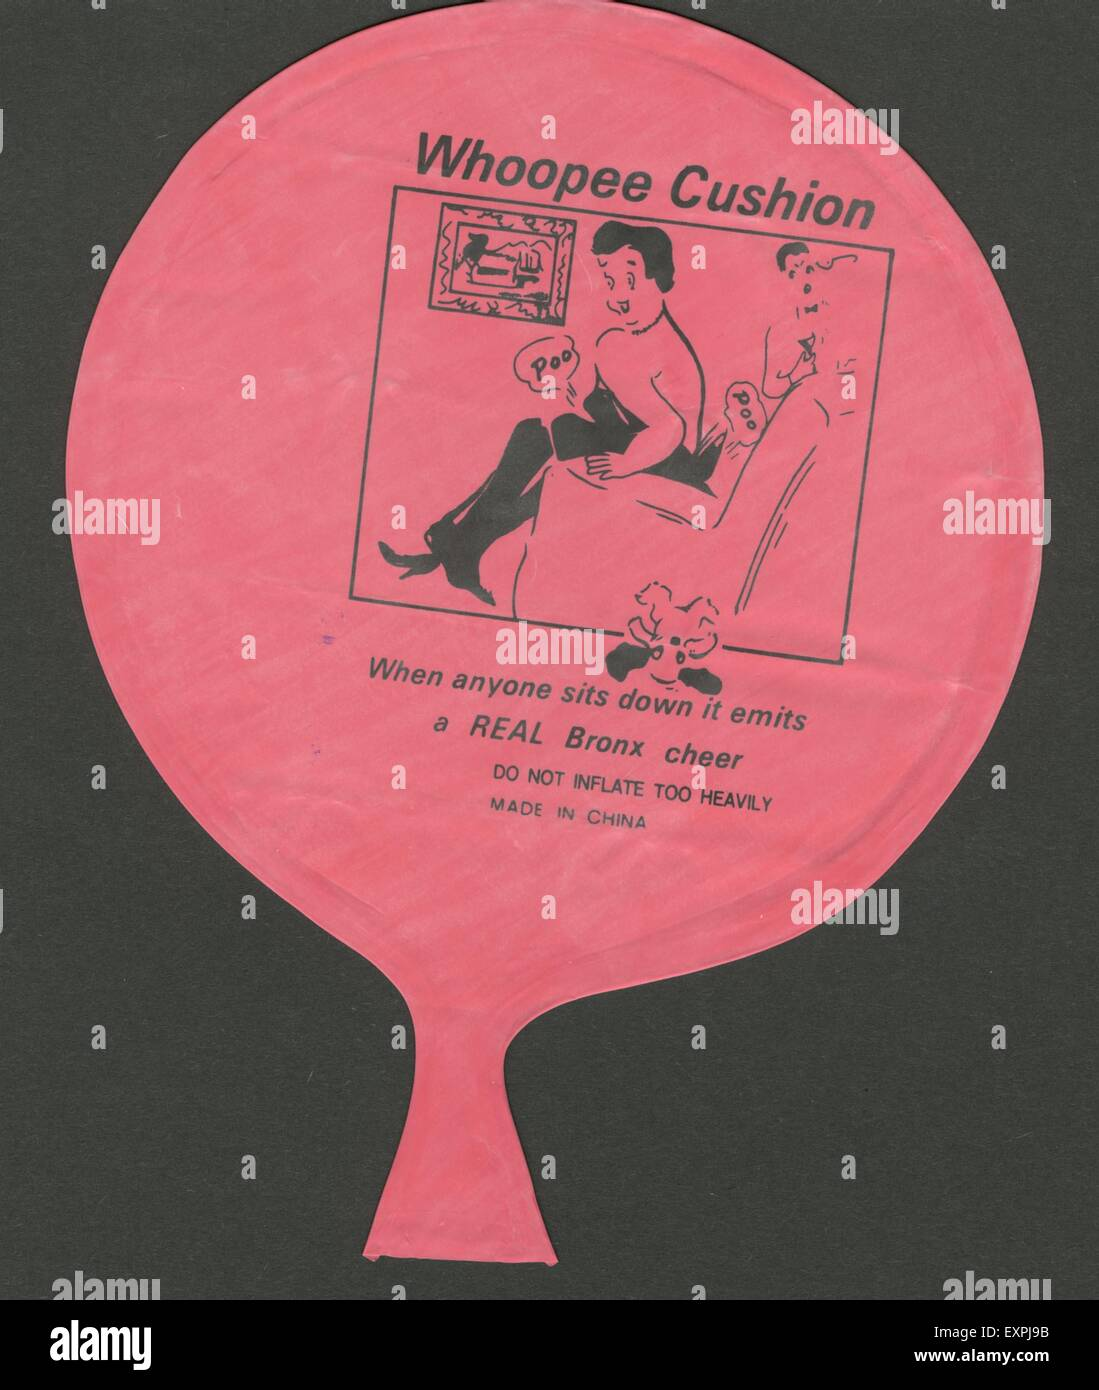 1960 UK Whoopee emballage Coussins Photo Stock